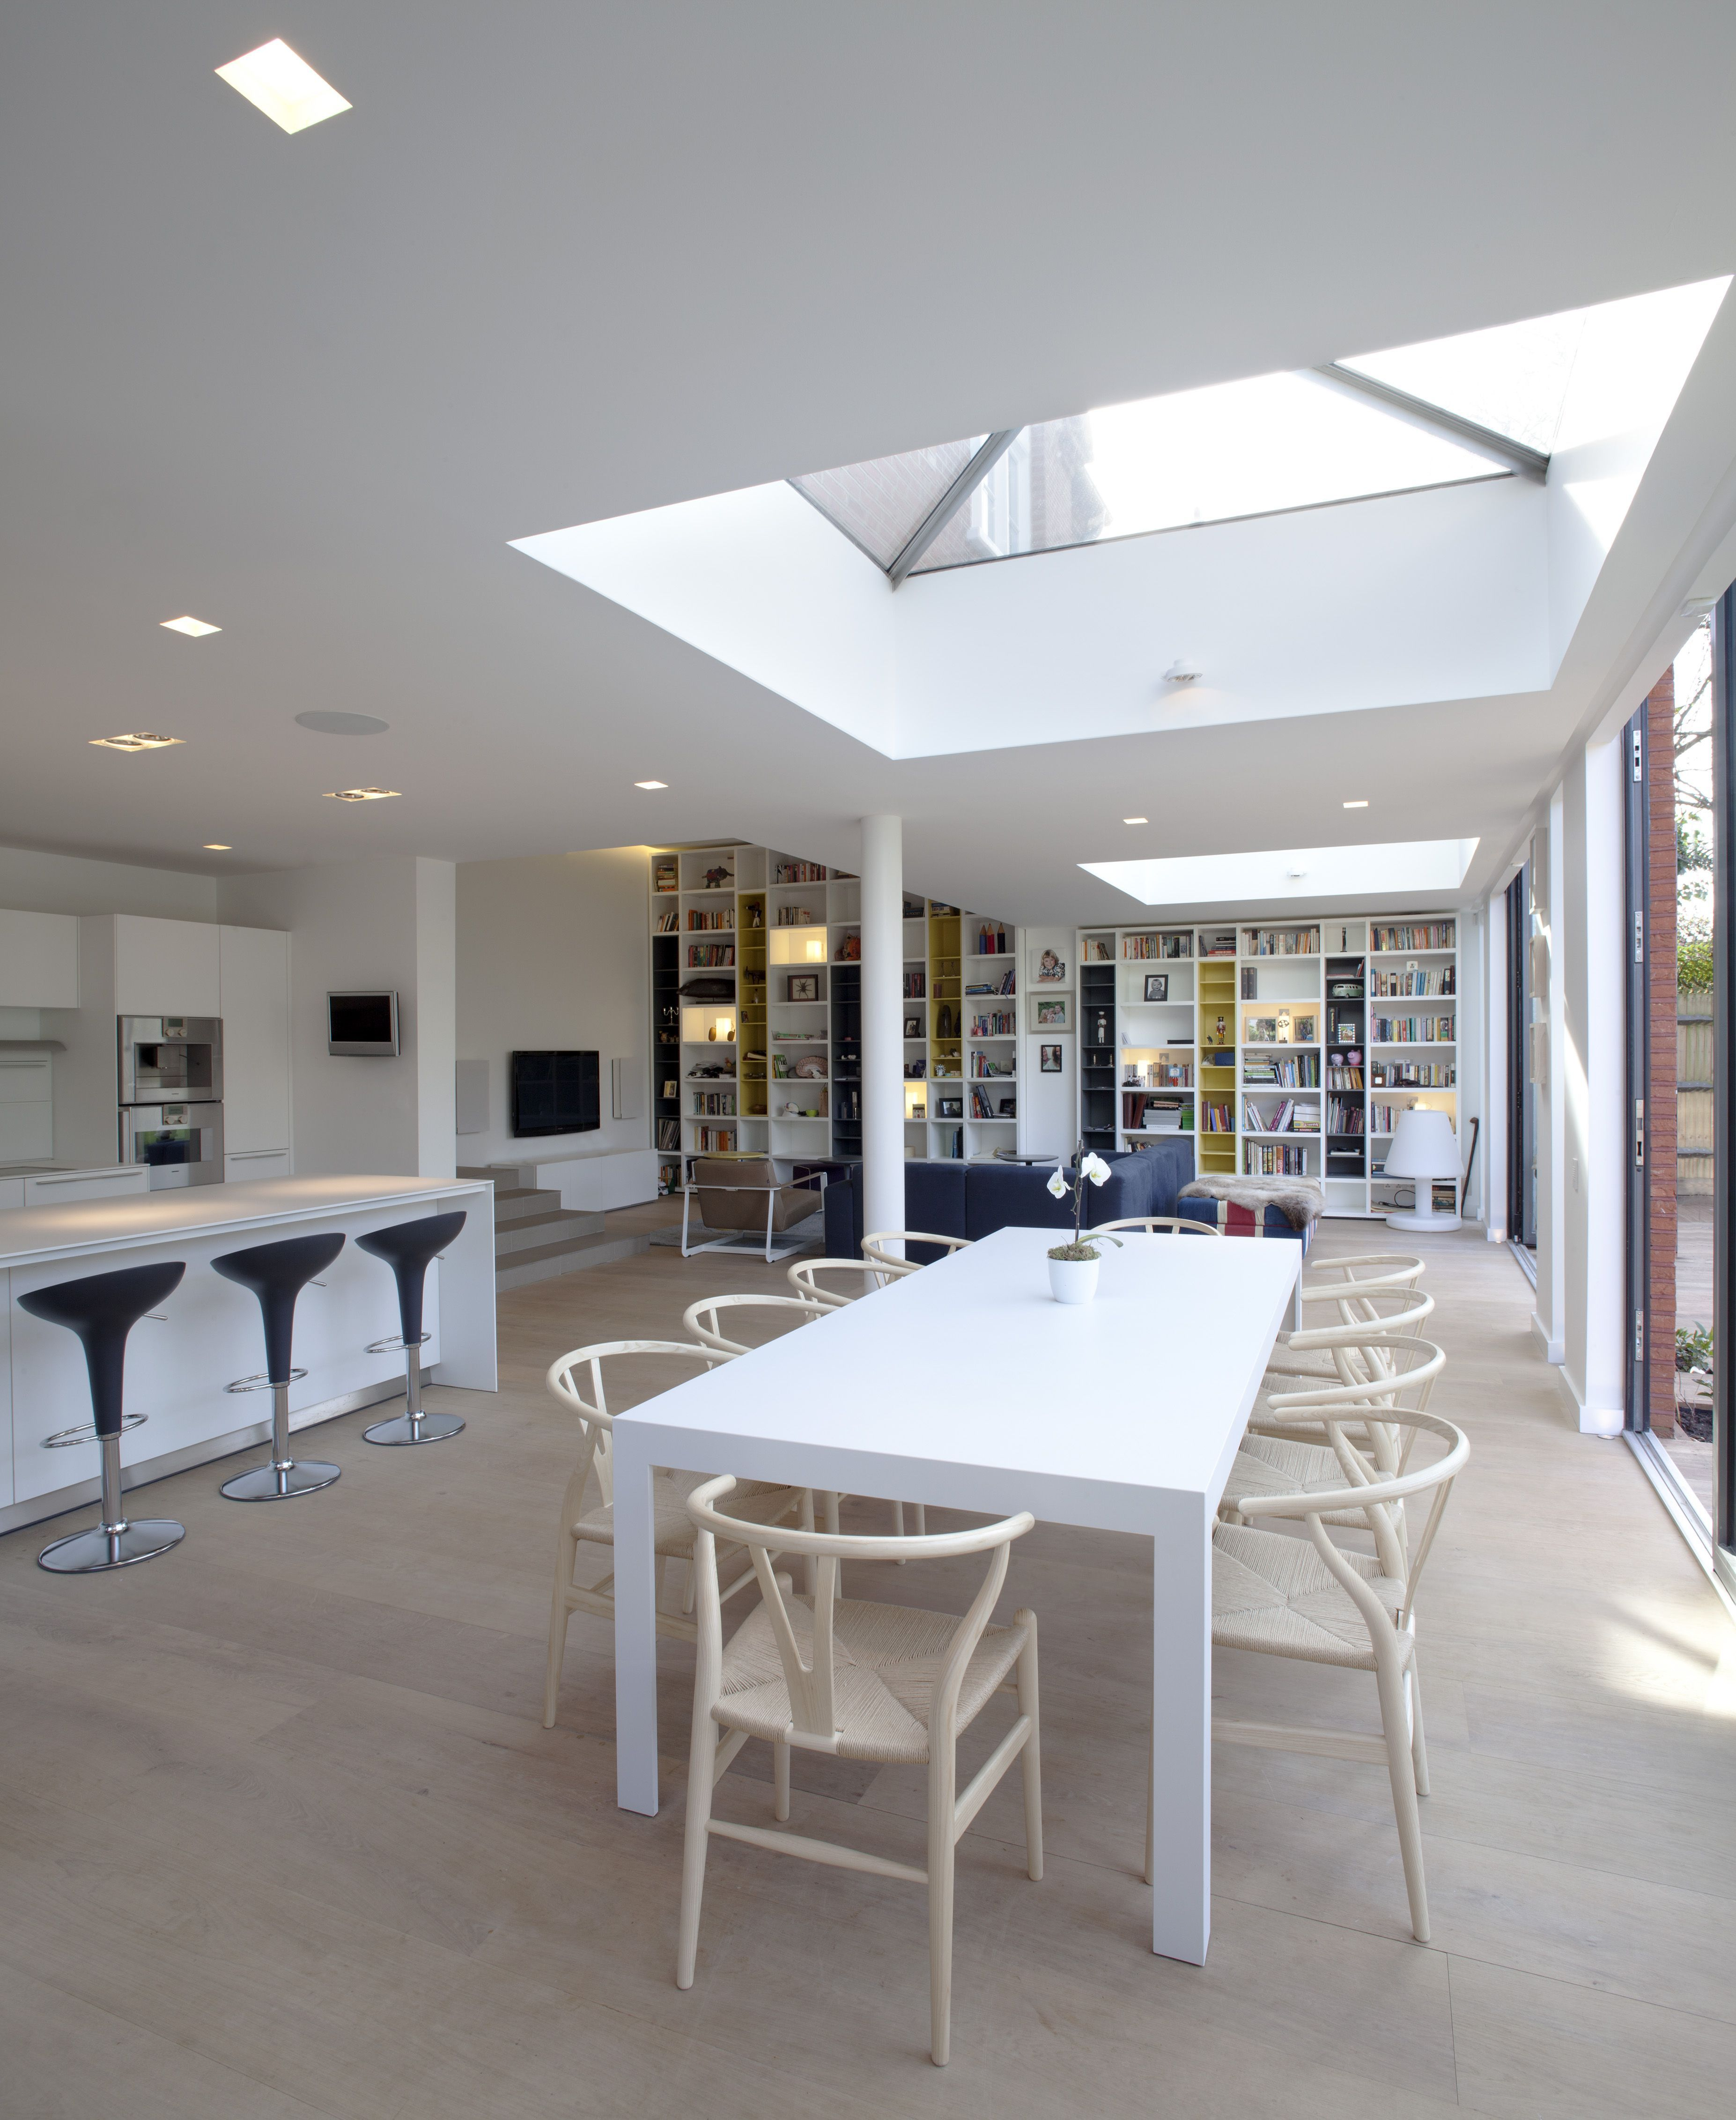 kitchen extensions #kitchenextensions #Kitchen #extension | Private House | London SW12 | Pike and Partners Architects